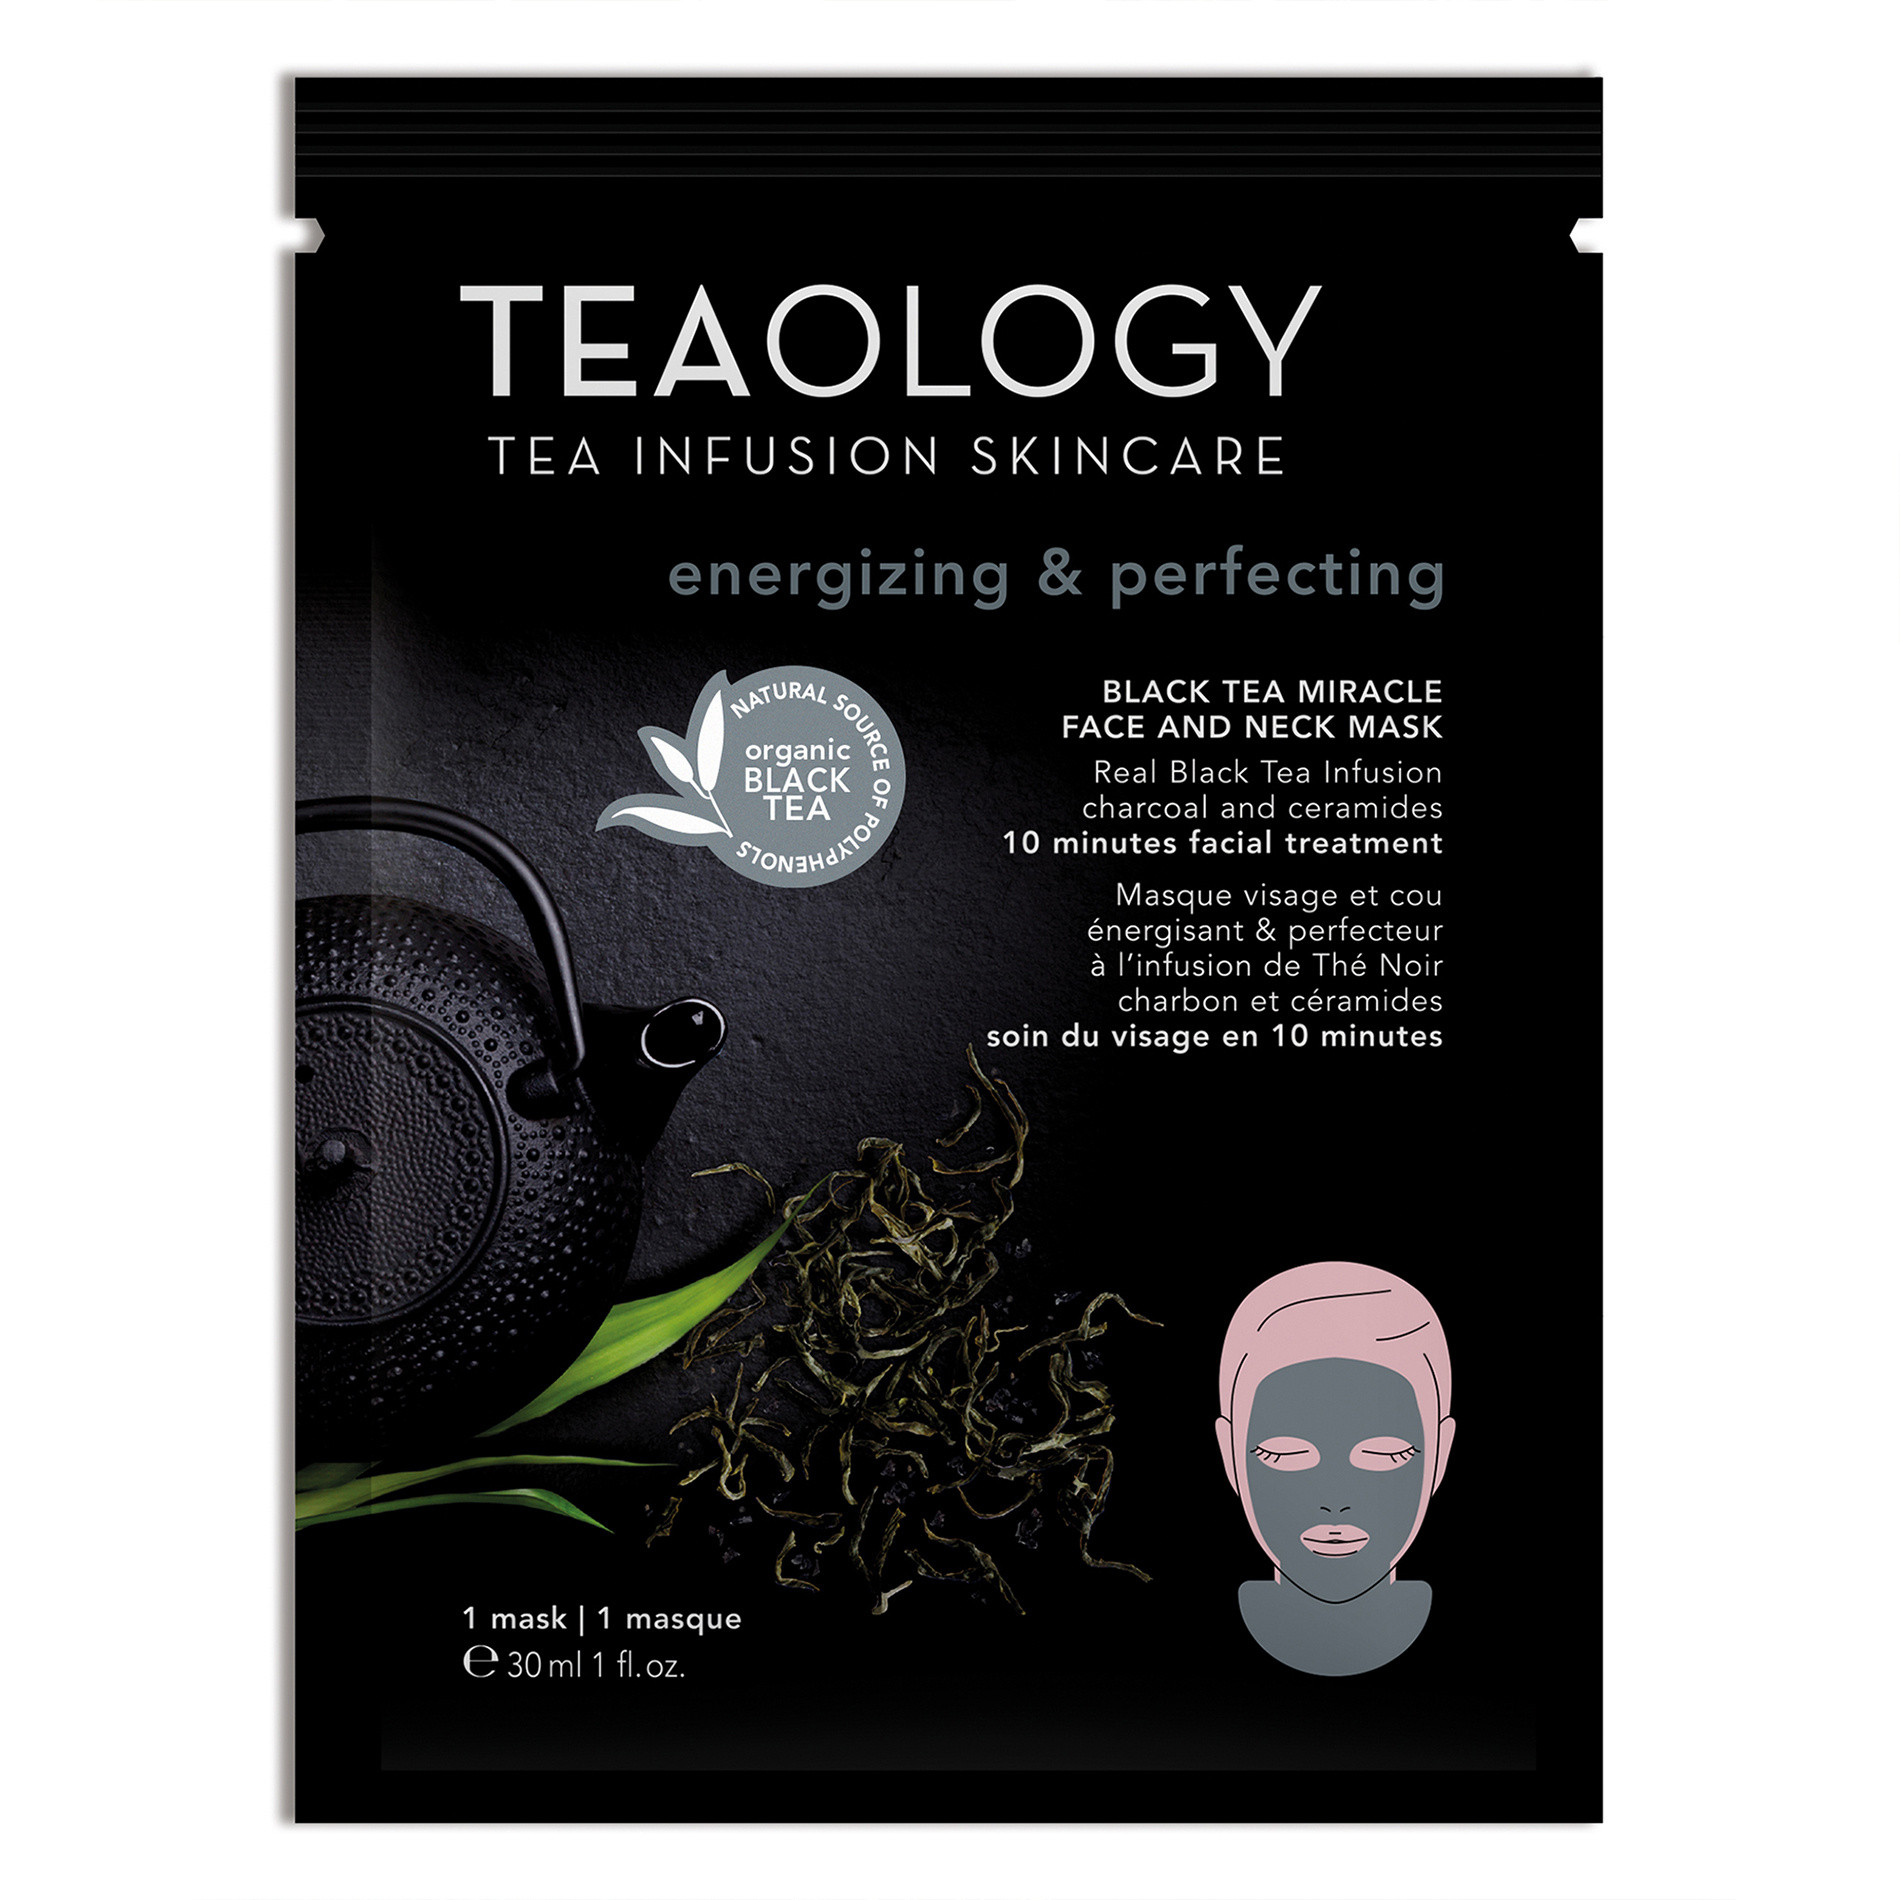 Teaology Black Tea Miracle Face and Neck Mask Energizzante e Perfezionatrice 30 ml, Nero, large image number 0